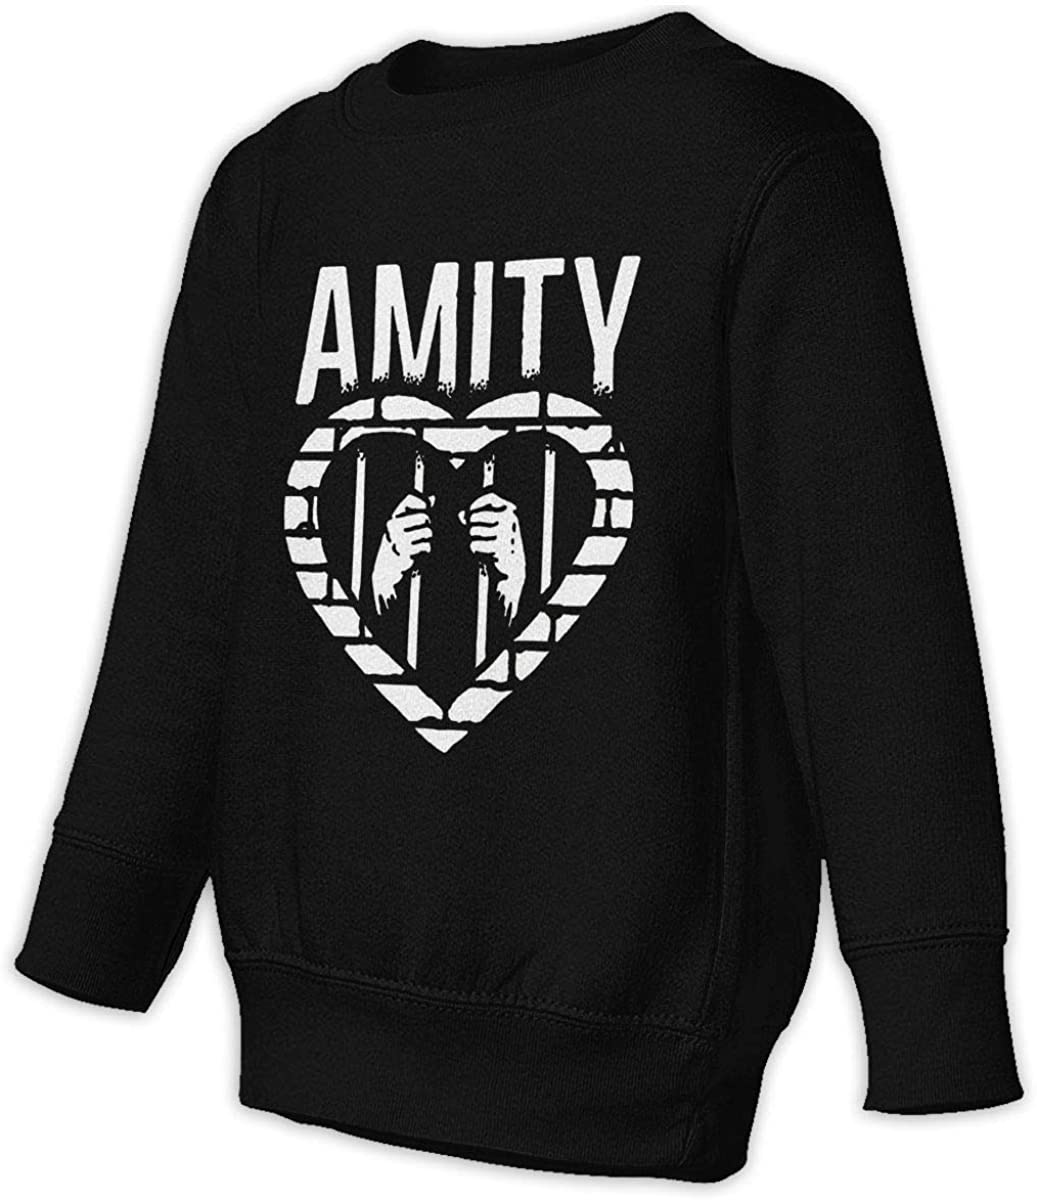 1836 The Amity Affliction Unisex Sweatshirt Youth Boy and Girls Pullover Sweatshirt